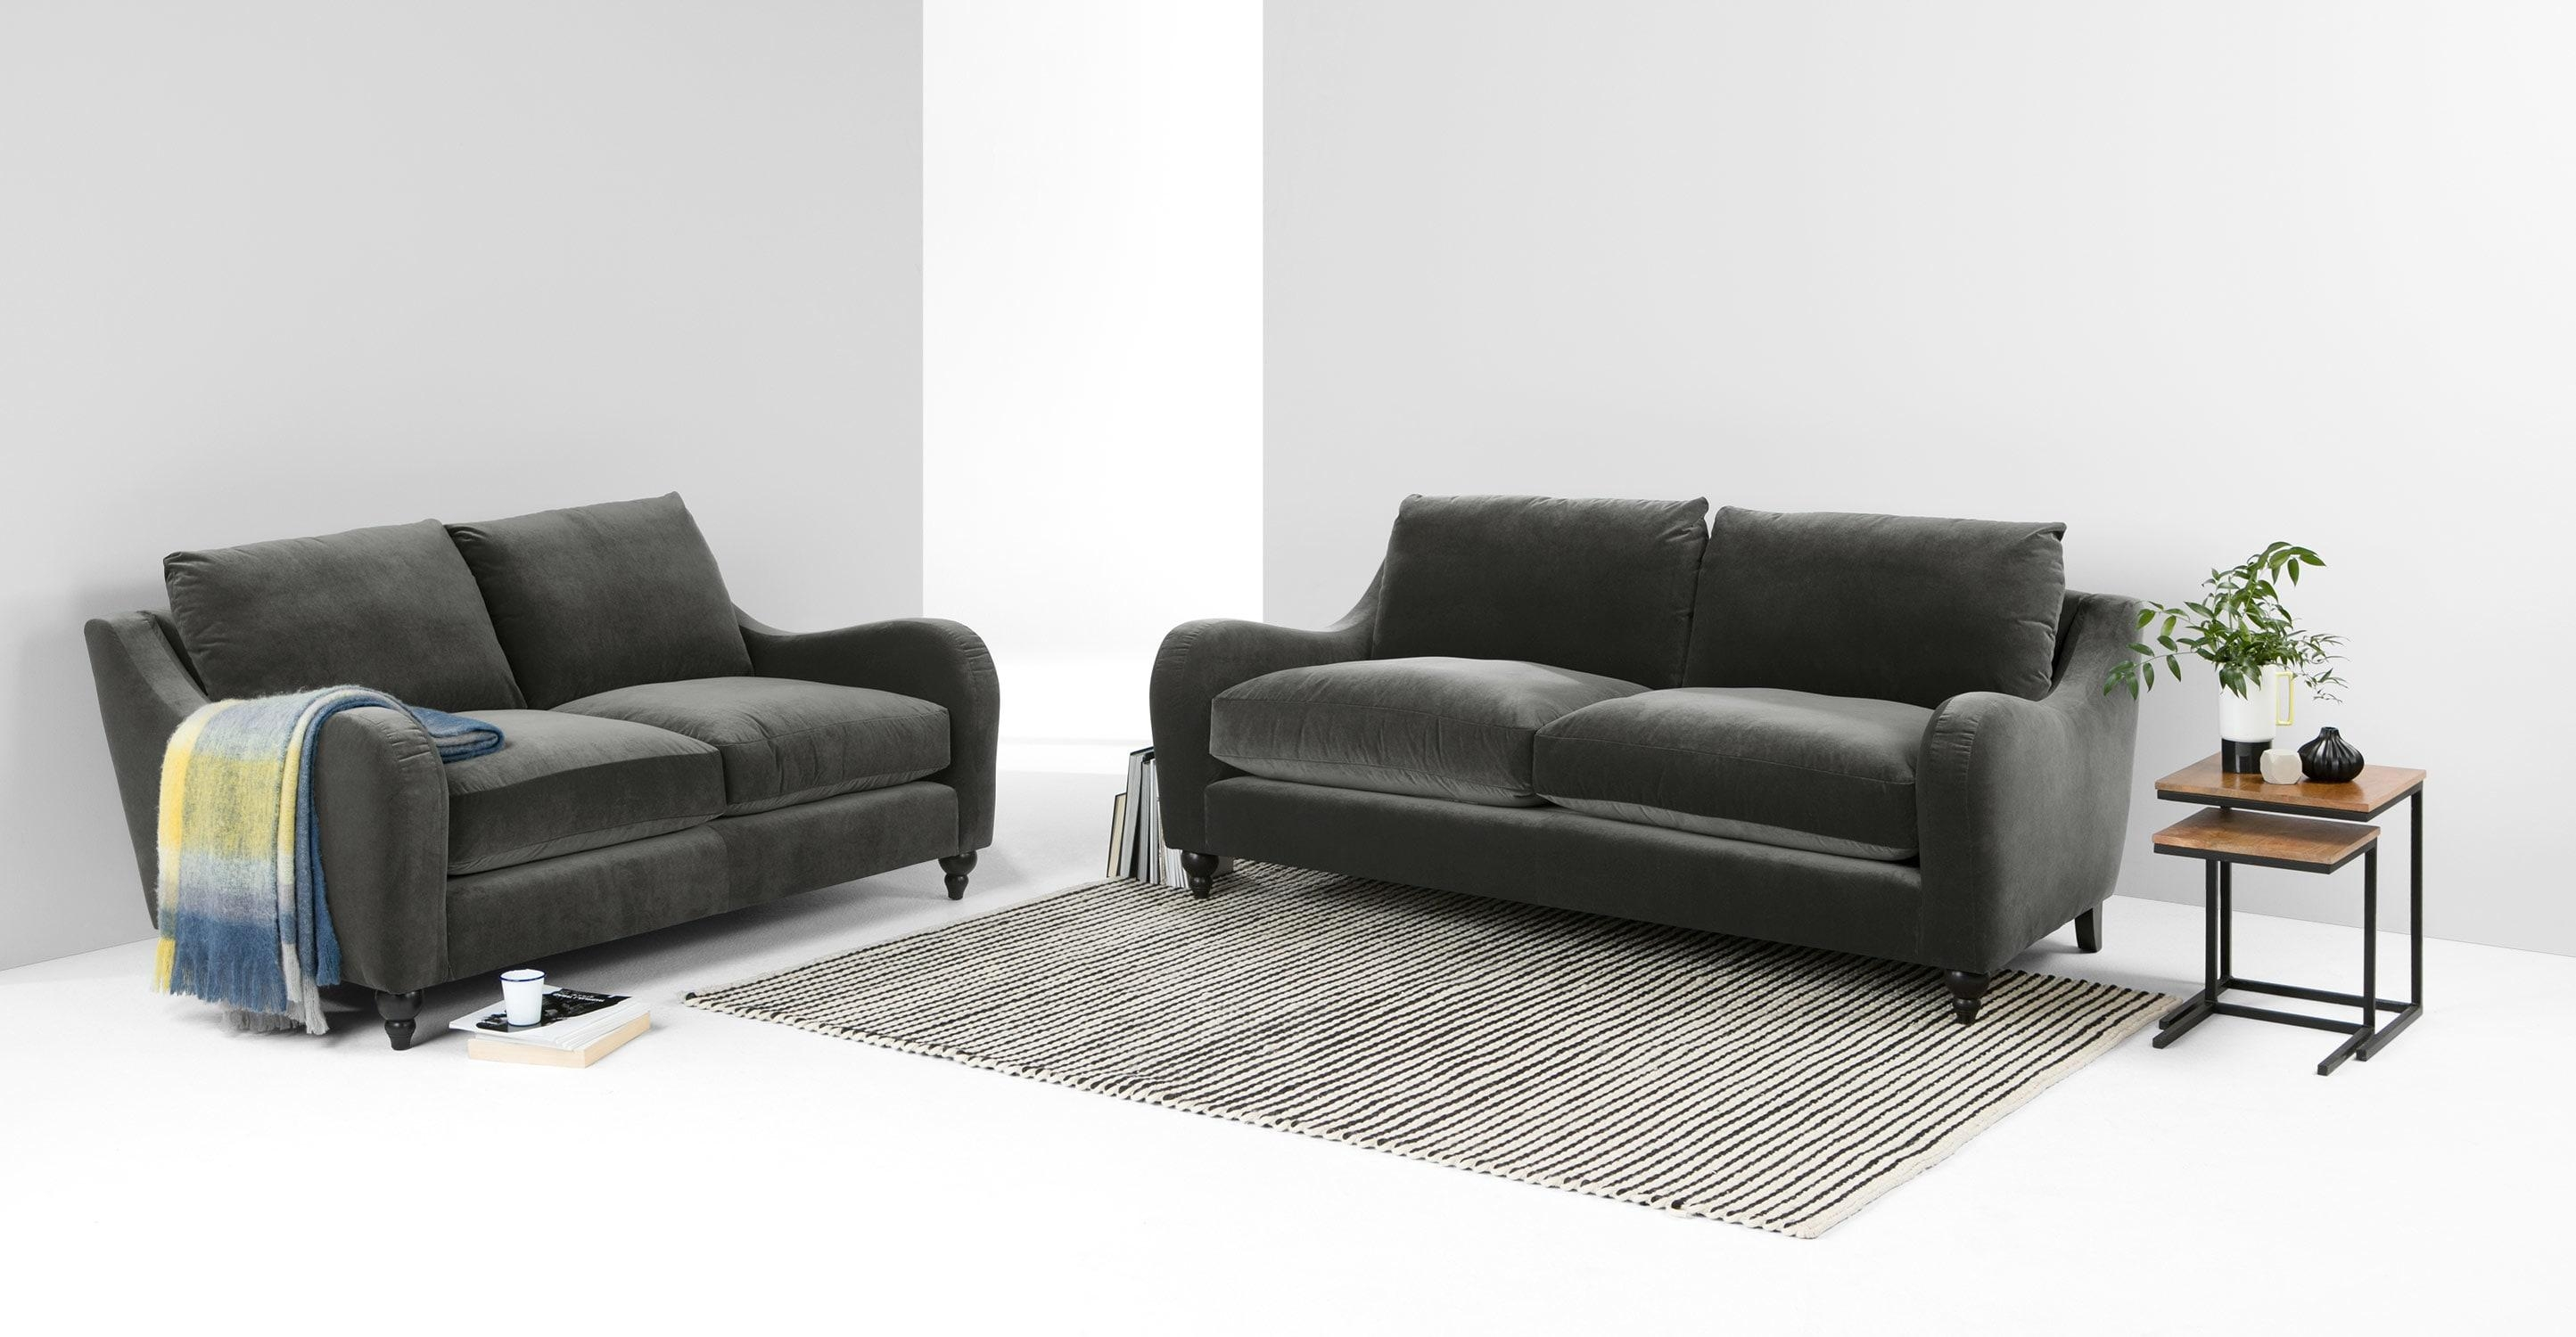 Furniture: Best Quality Grey Velvet Sofa For Your Living Room Inside Funky Sofas For Sale (Image 10 of 20)